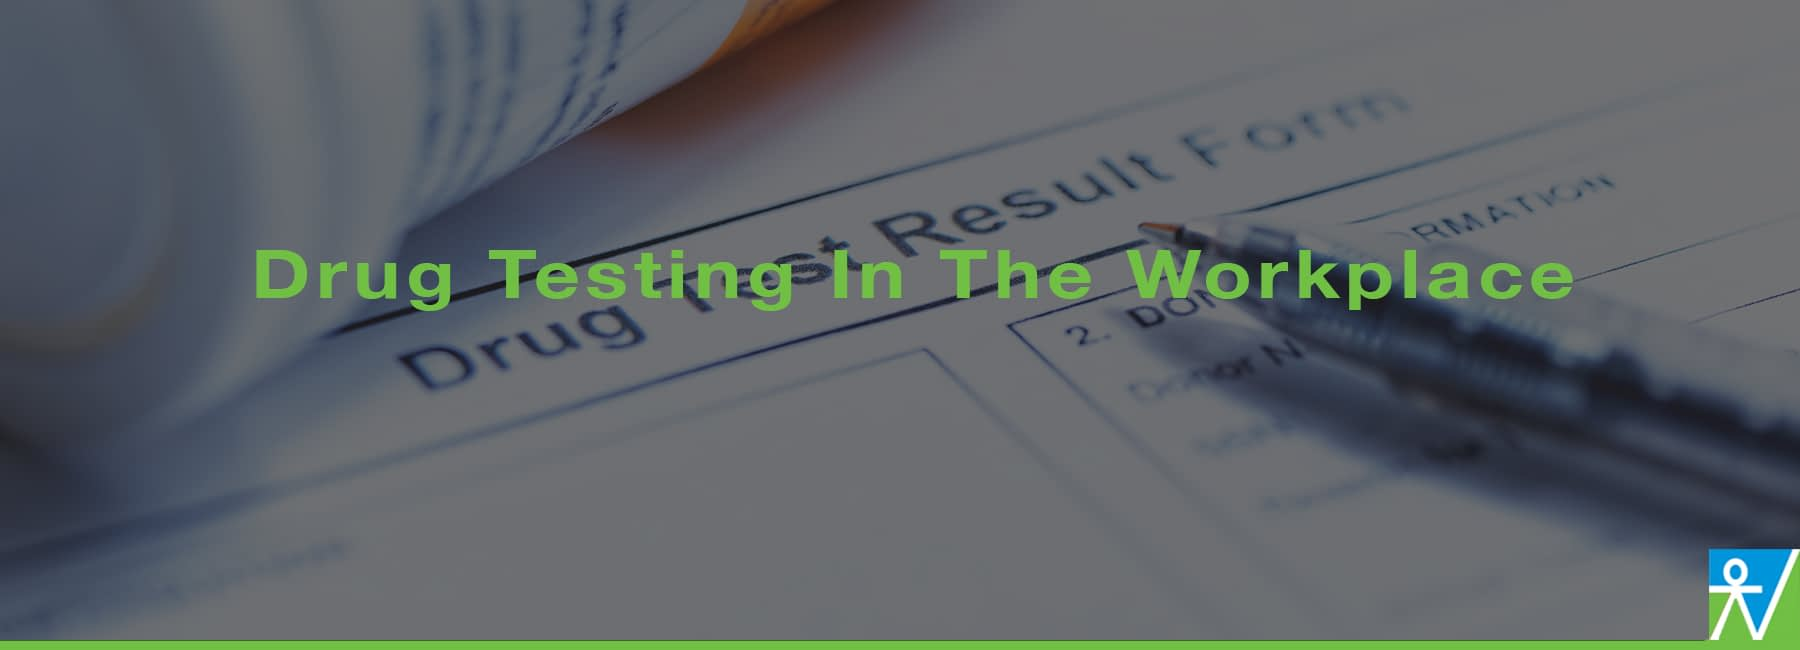 Drug testing at work and in the workplace   Auckland, New Zealand